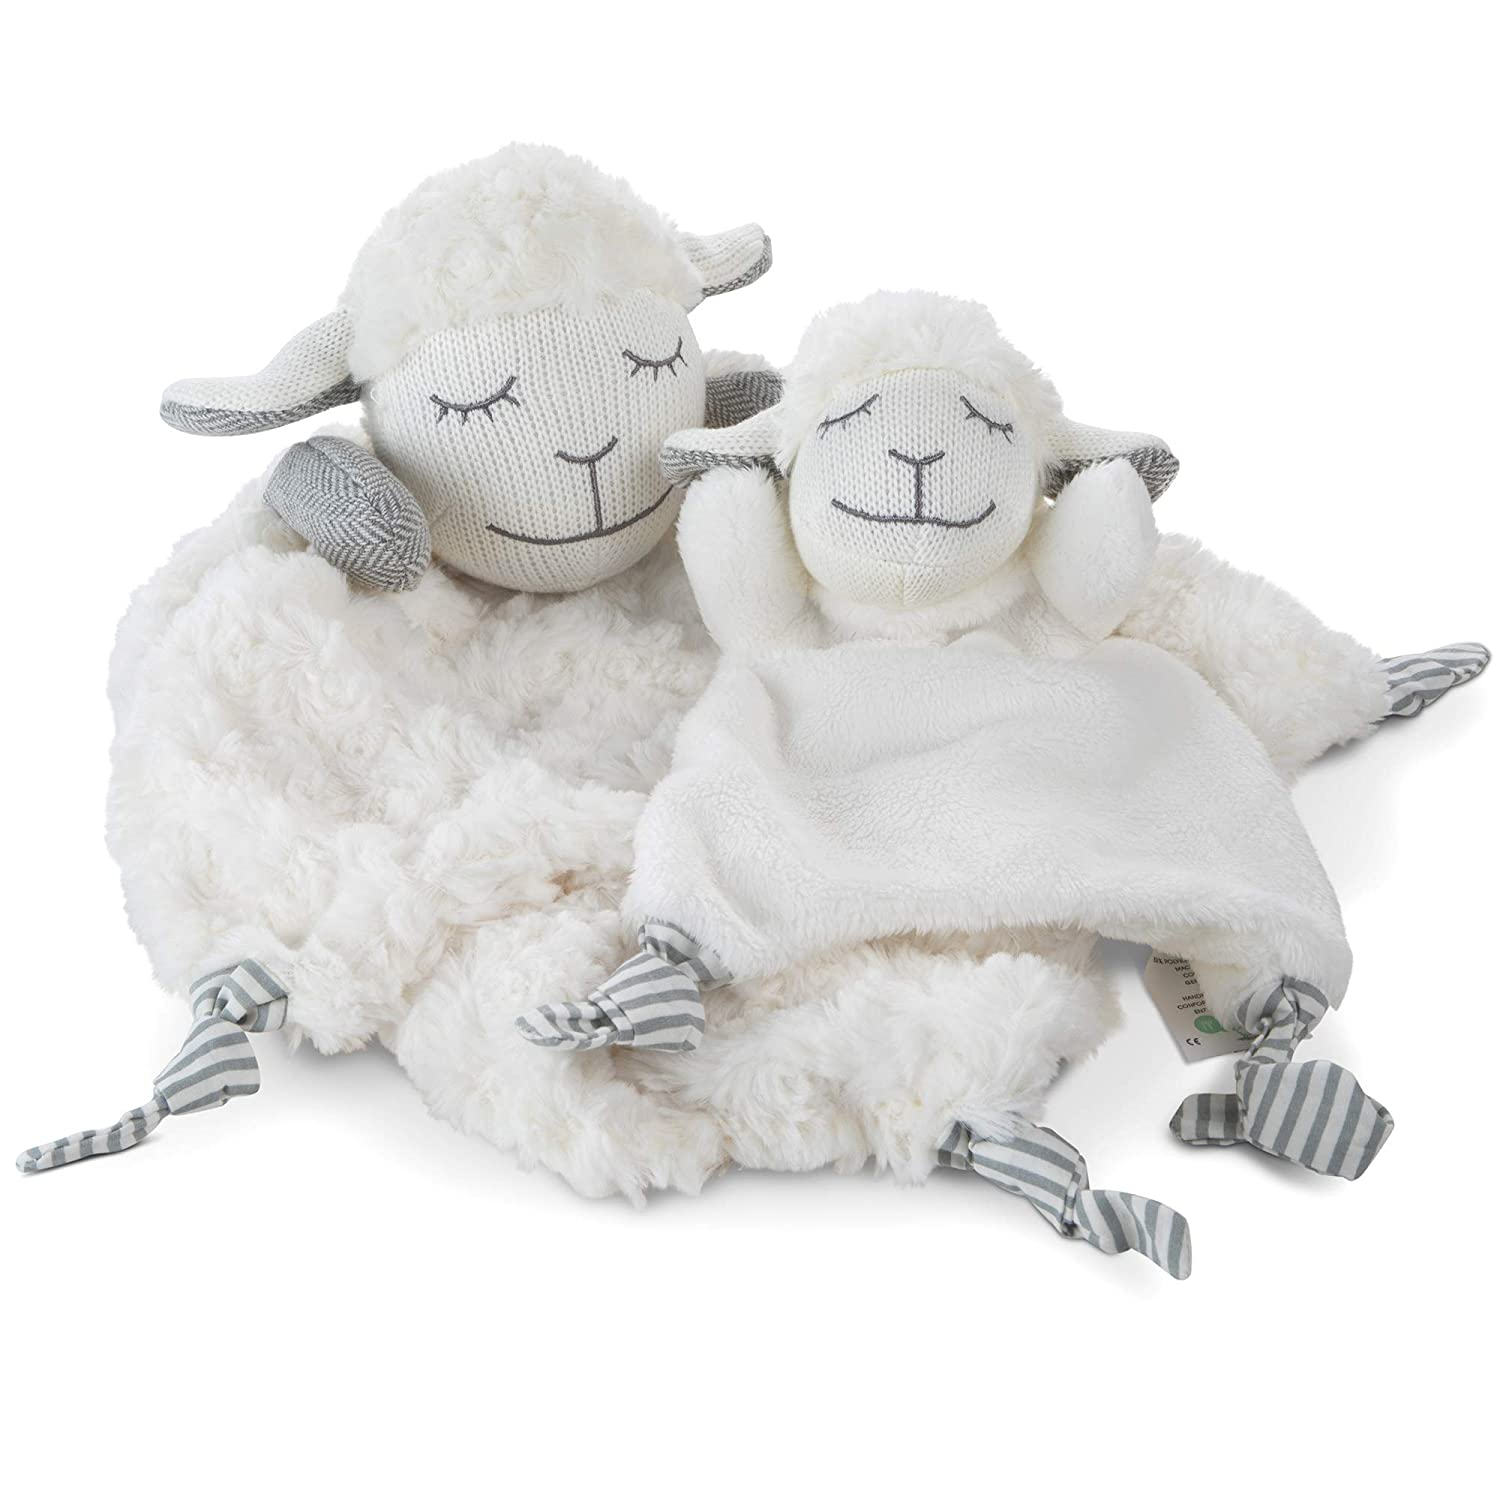 9b6ca9a747f35 Lovey Security Blanket Gift Set of 2 for Baby Boys and Girls - Sweet Loveys  and Blankies with Lamb...